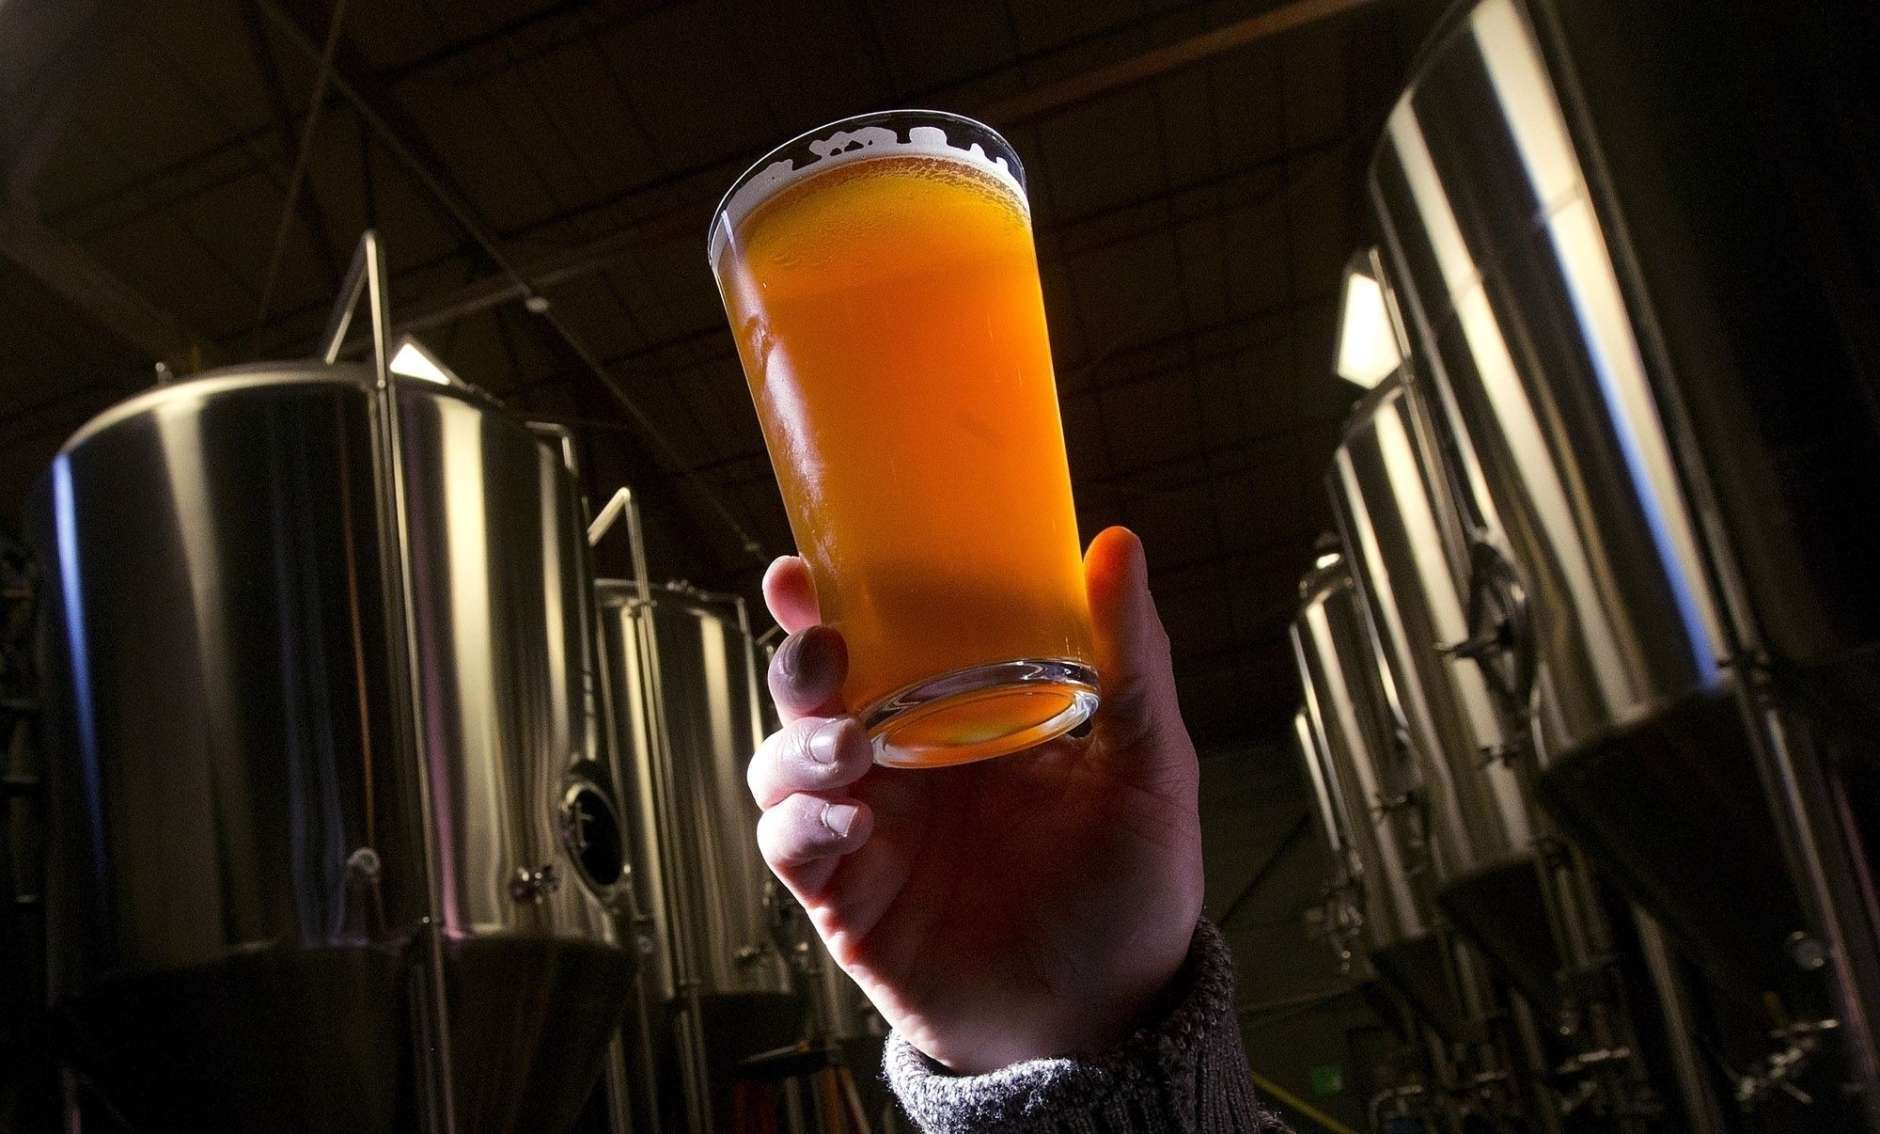 FILE - In this Dec. 11, 2013, file photo, brewer Stefano Daneri holding up a beer at Good People Brewing in Birmingham, Ala. Alabama's alcohol regulators want the name, address, age and phone number of everyone who buys beer in one of the state's craft breweries and takes it home to drink, a move that is raising concerns about privacy. he Alabama Alcoholic Beverage Control Board is considering a new rule that would require brewers to collect the personal information of anyone who purchases beer at a brewery for off-premise consumption. (AP Photo/Dave Martin, File)